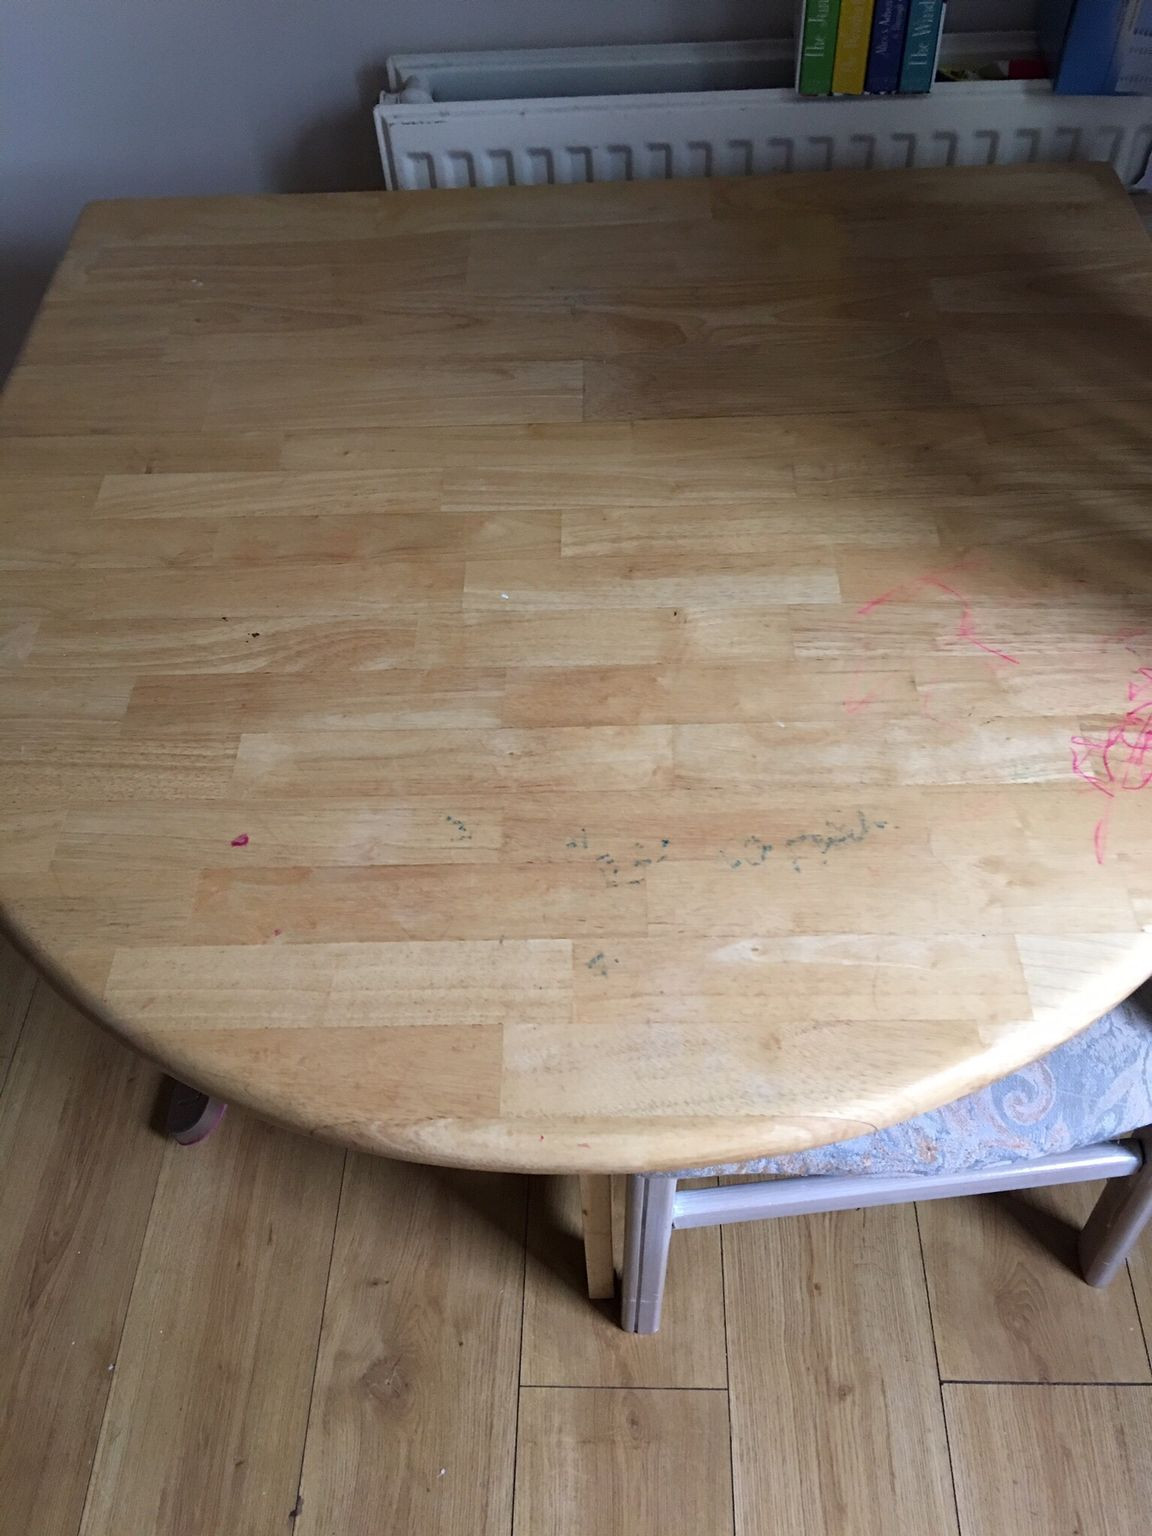 hardwood floor refinishing florence sc of https en shpock com i wqtjf3cryfl0wbyw 2017 05 07t190352 within wooden table and chairs 61796968